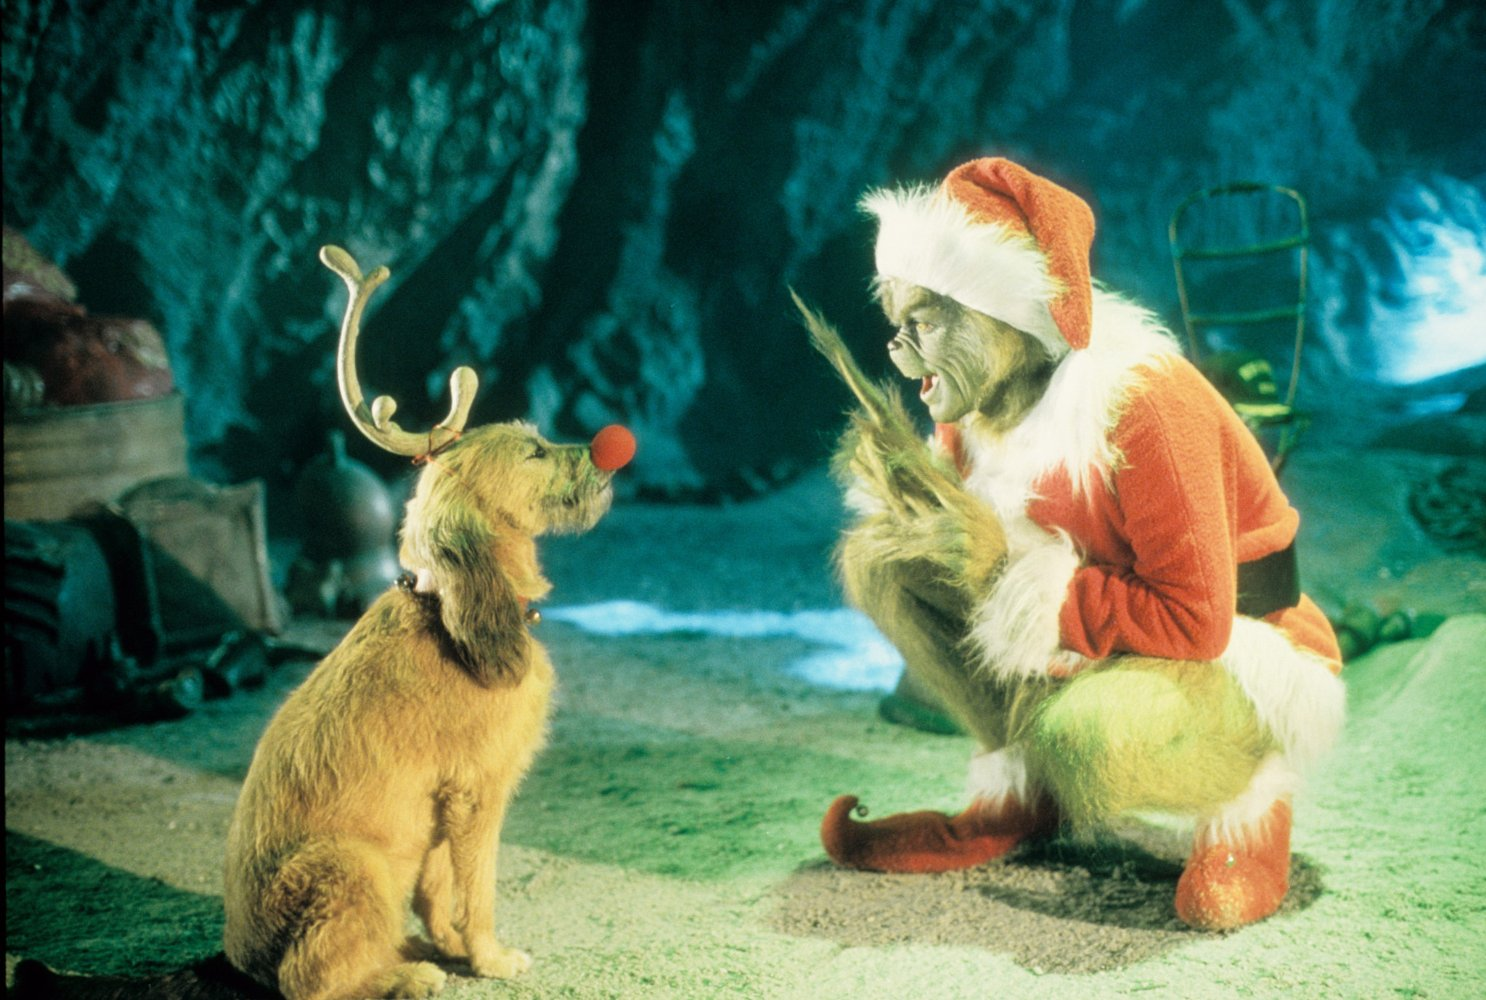 How The Grinch Stole Christmas Full Movie.How The Grinch Stole Christmas 2000 Watch Full Movie In Hd